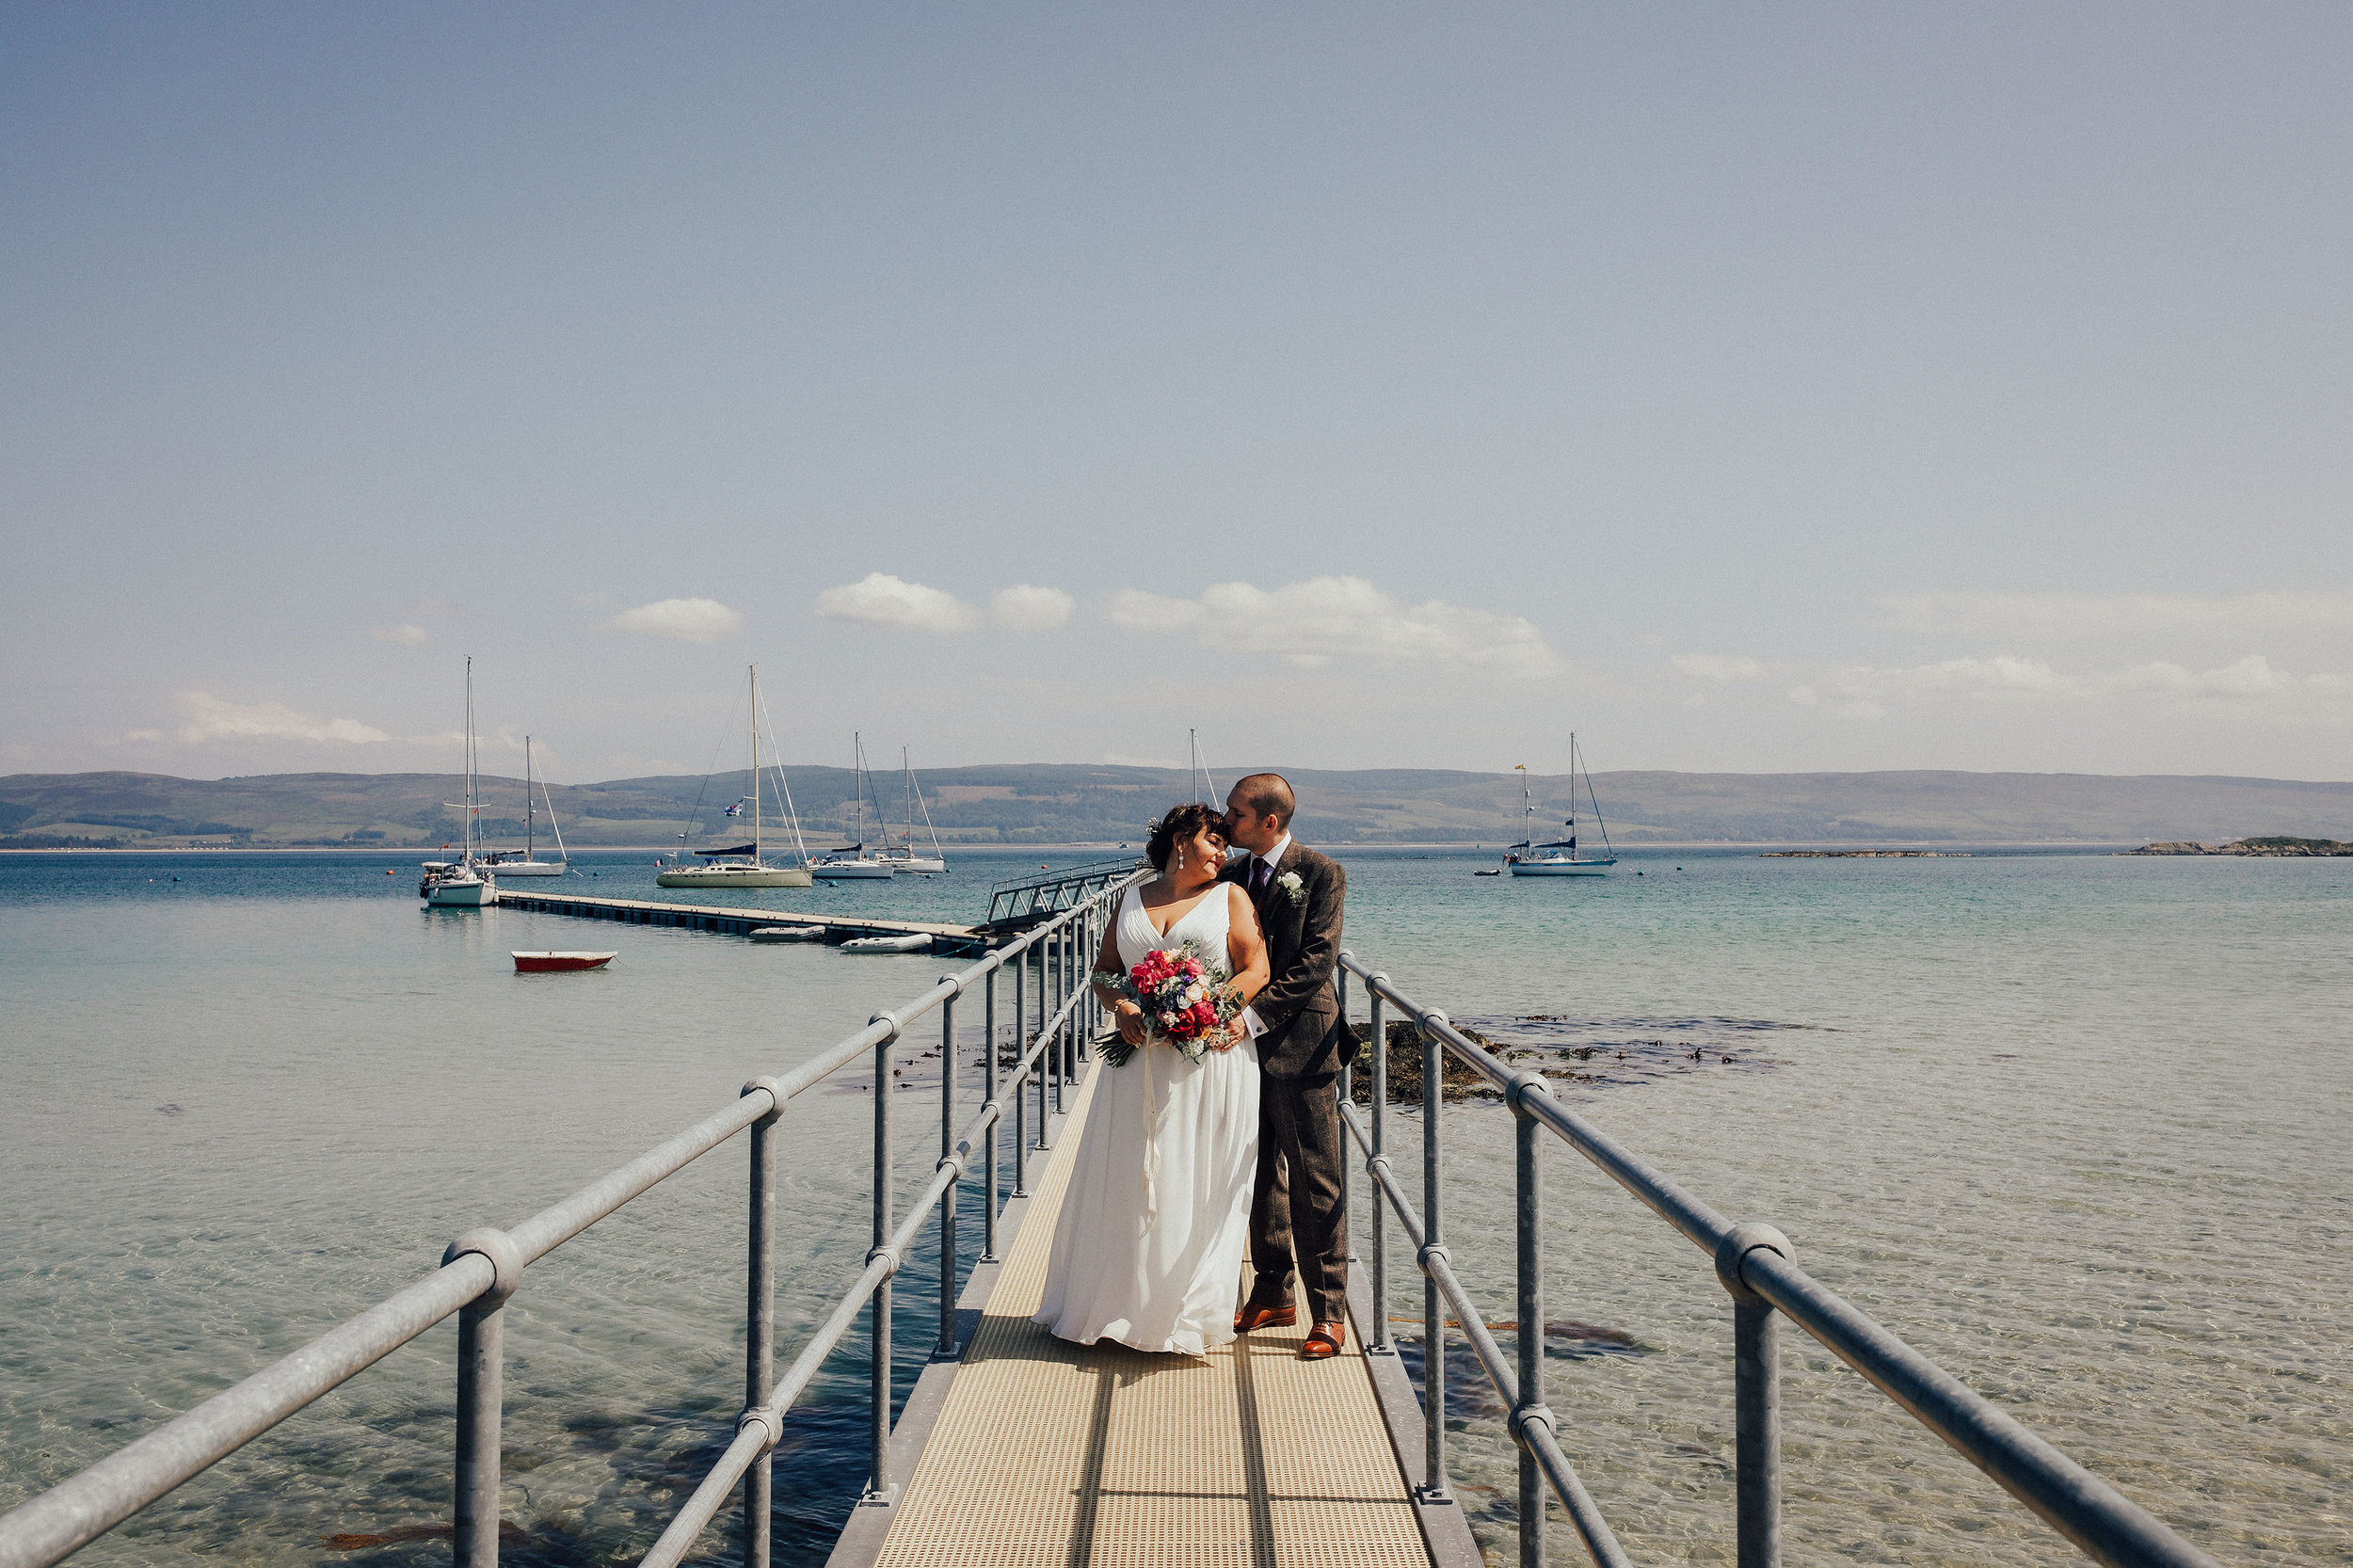 SCOTTISH_ELOPEMENT_PHOTOGRAPHER_PJ_PHILLIPS_PHOTOGRAPHY_6.jpg